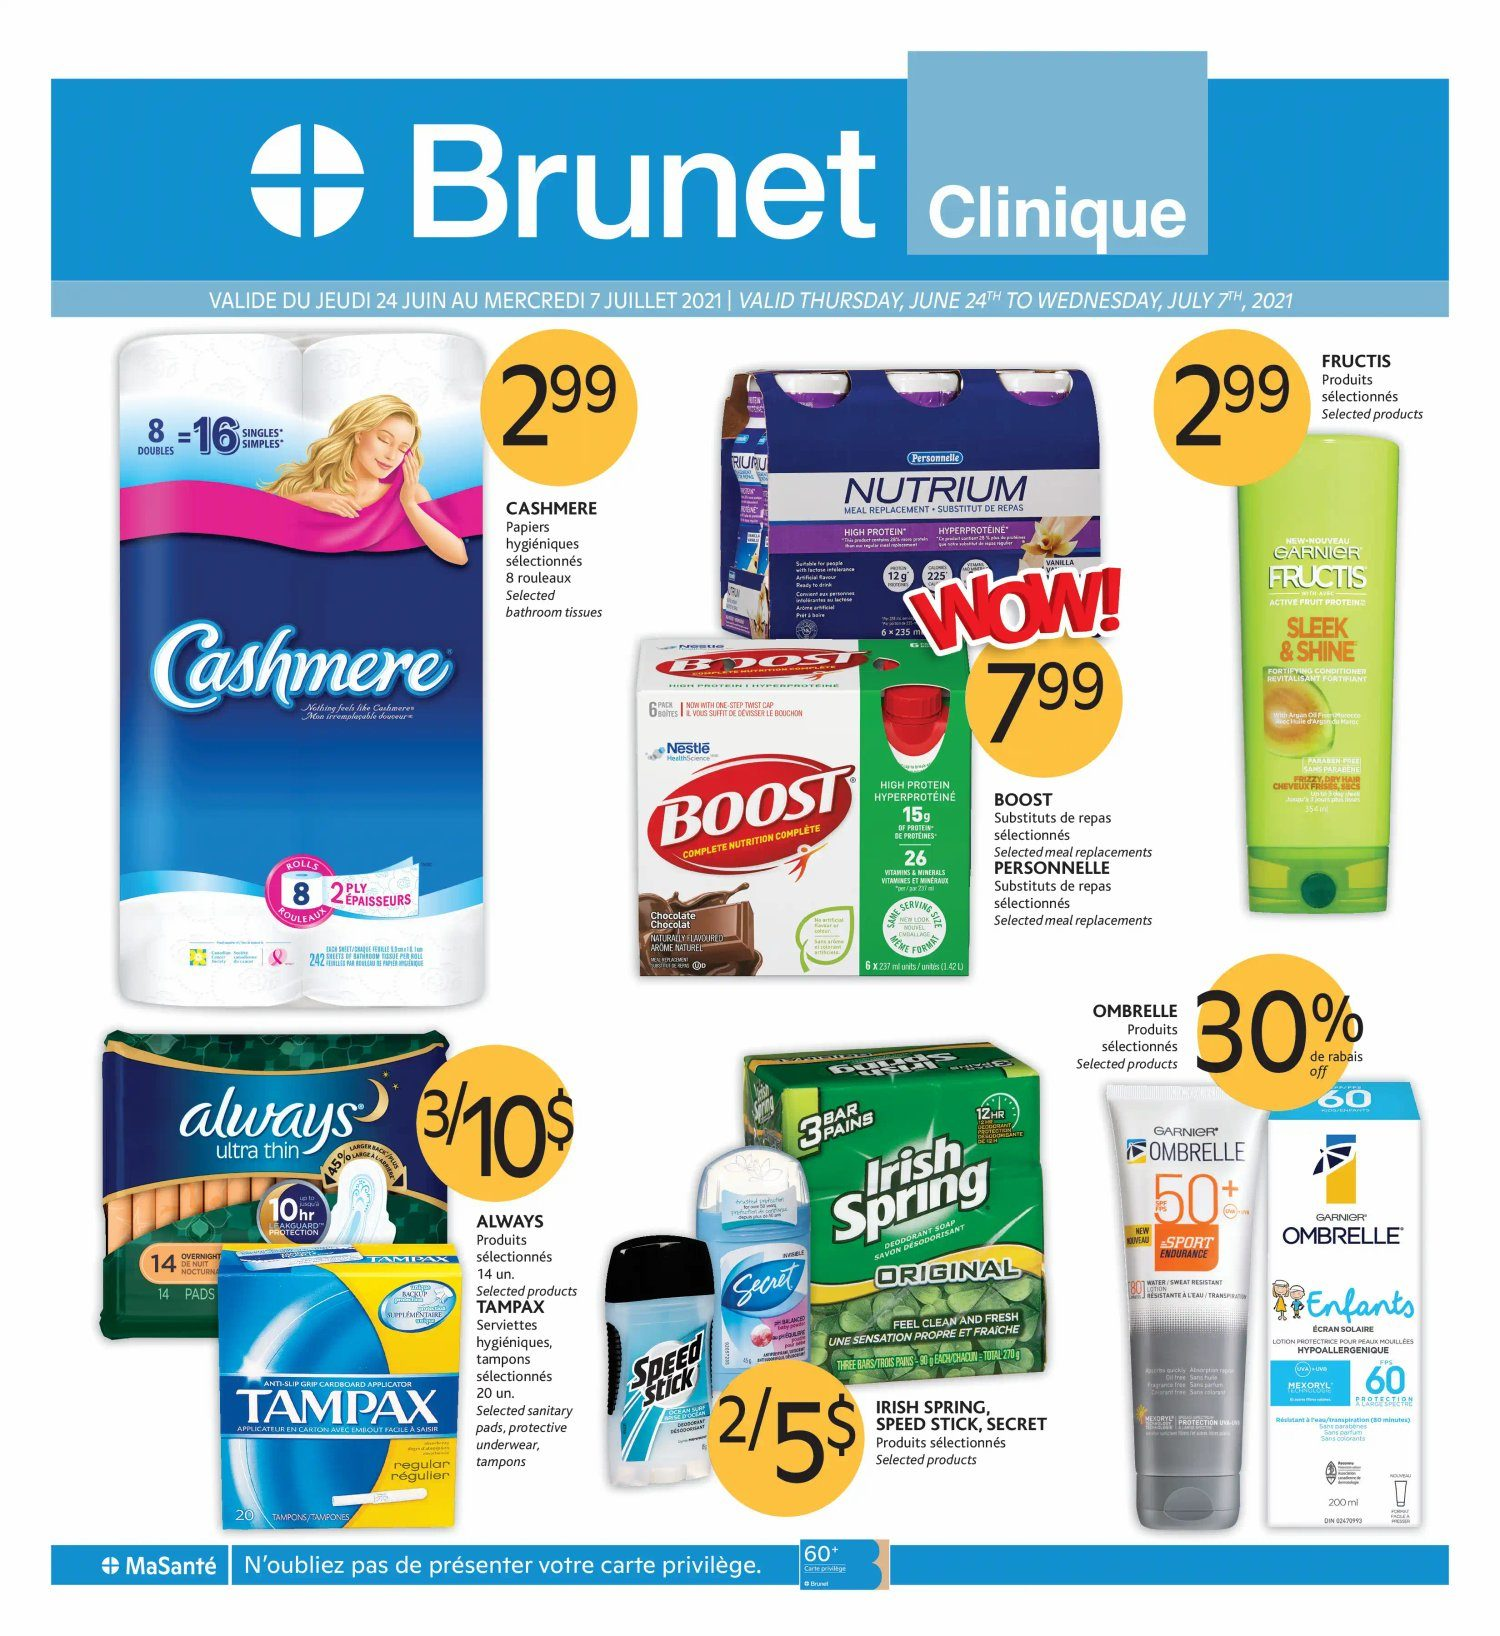 Brunet - Clinical Specials - 2 Weeks of Savings